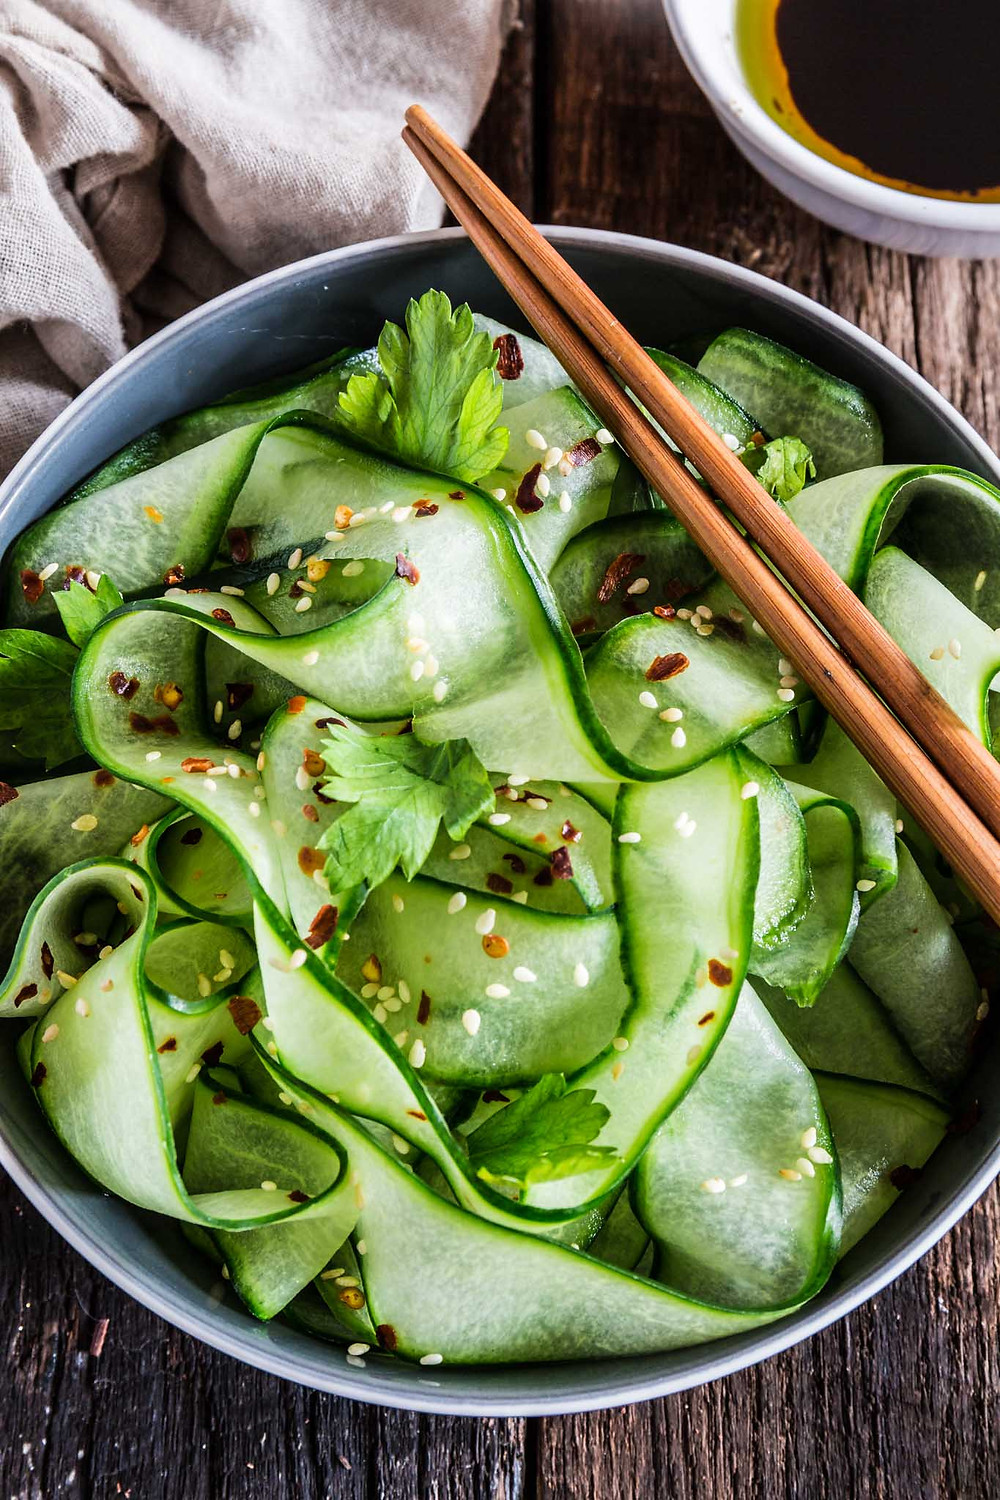 thai cucumber salad is a great way to make cucumbers taste a little different